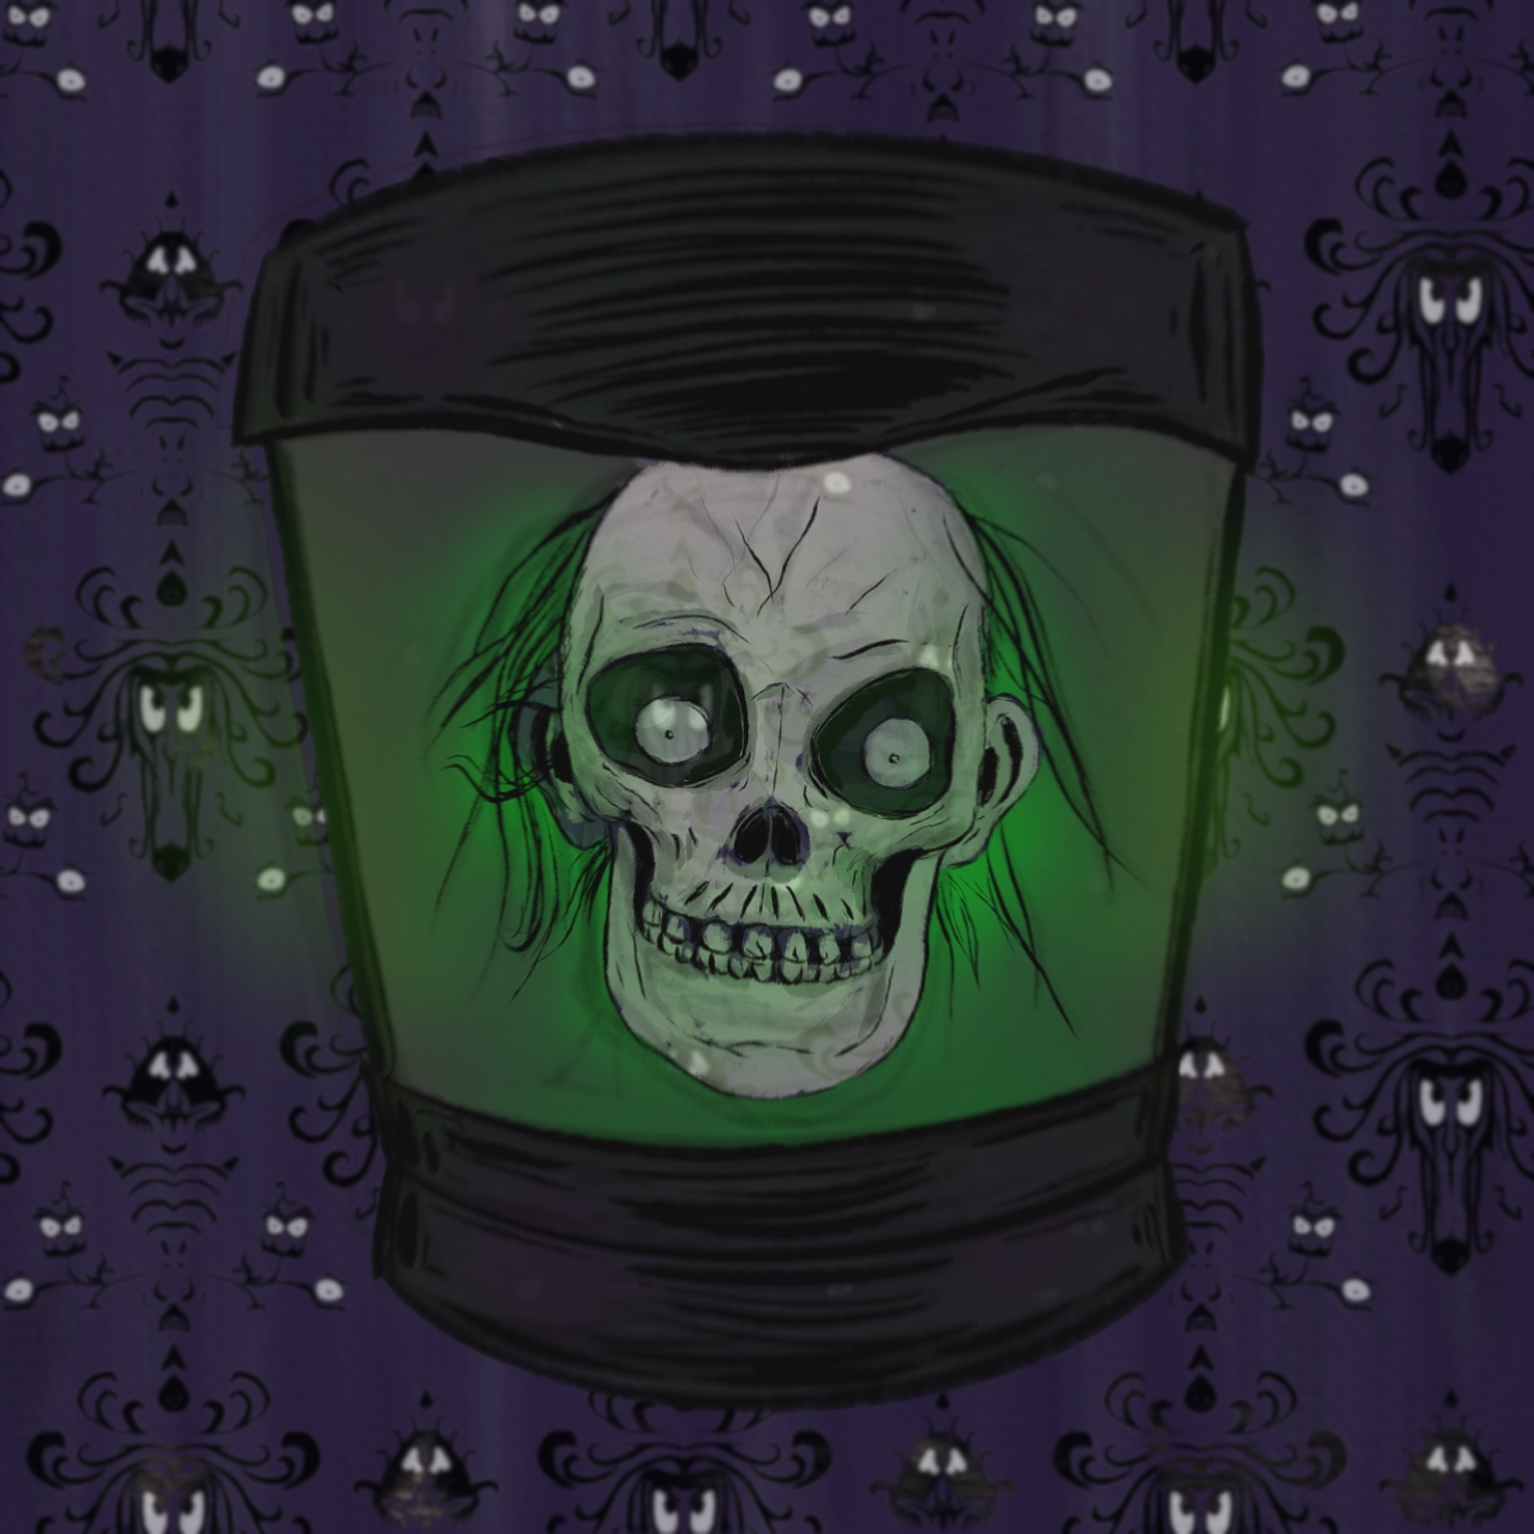 Who doesn't love the Hatbox Ghost?